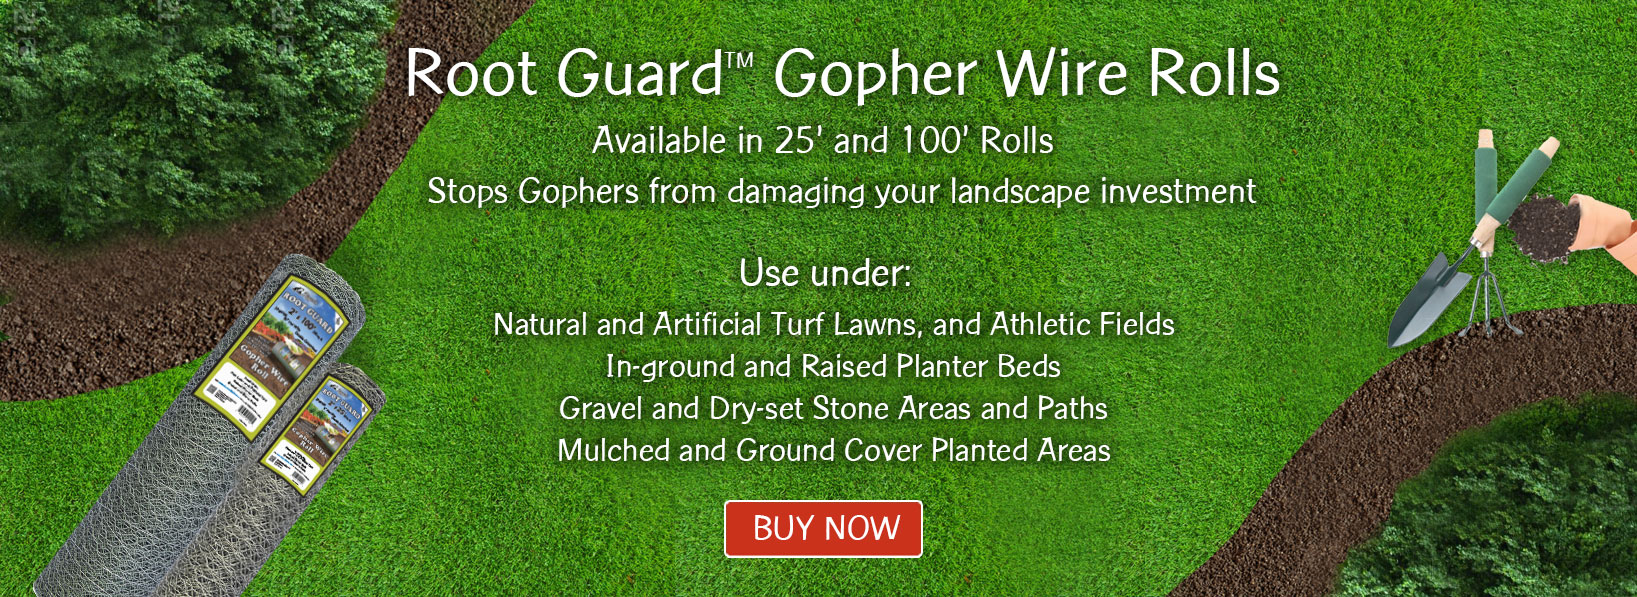 Root Guard Gopher Wire Roles